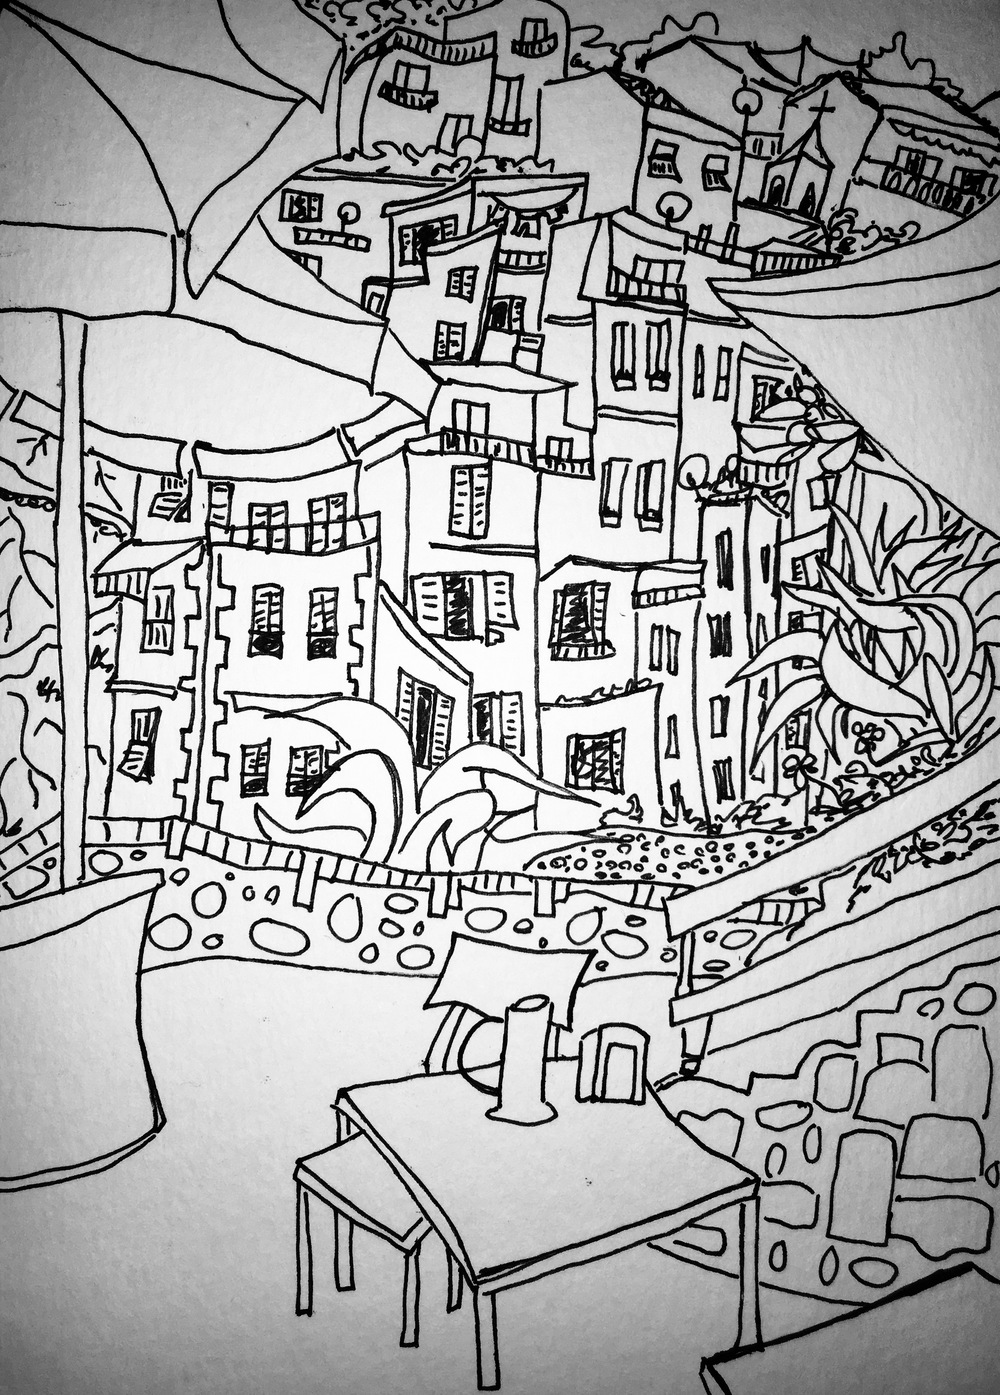 black and white line drawing of Riomaggiore, Italy by Katie Jurkiewicz